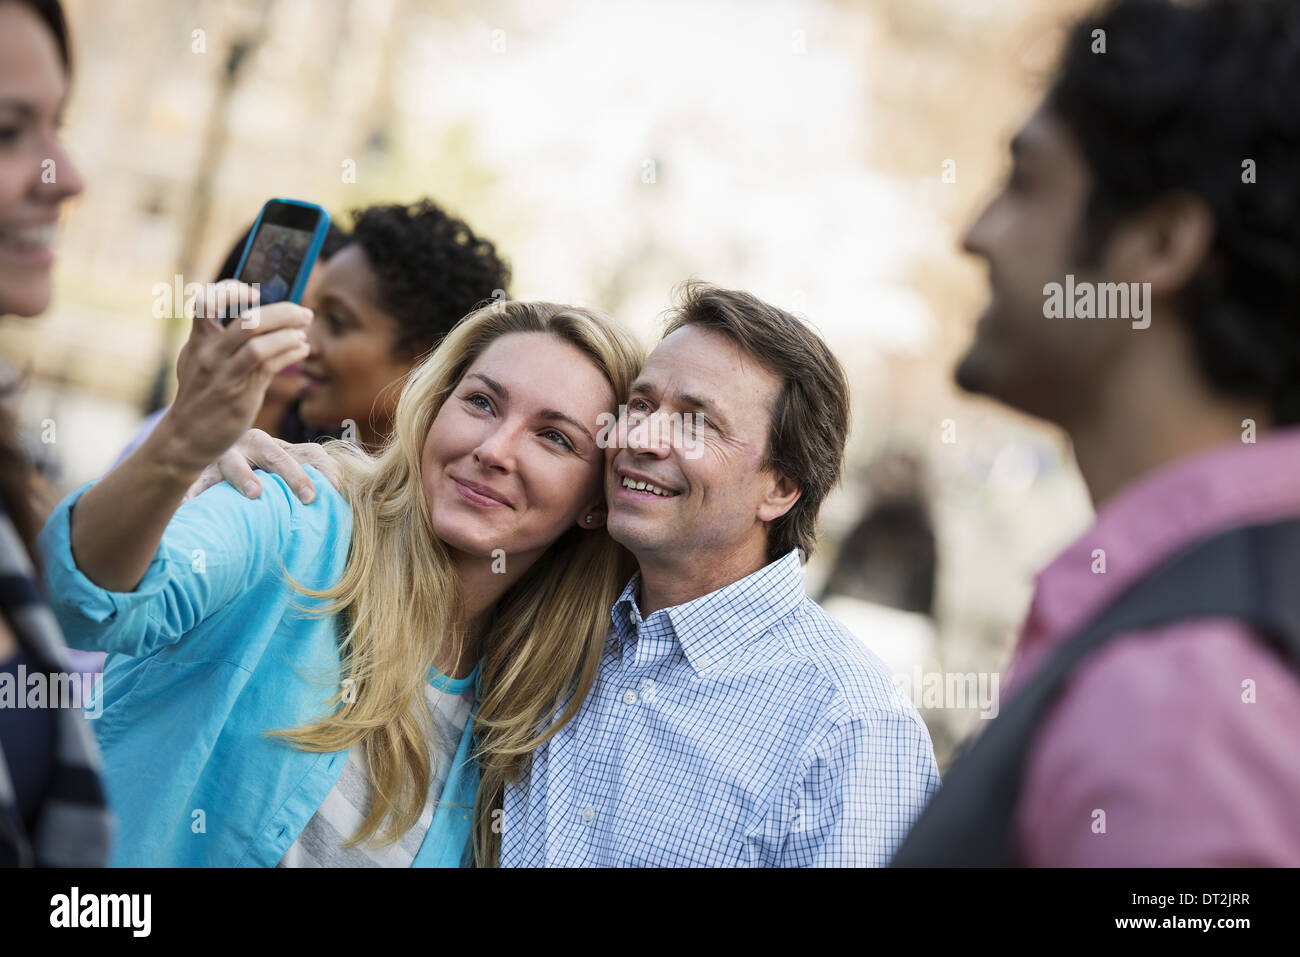 People outdoors in the city in spring time A woman using her cell phone to take a photograph A group of friends men and women - Stock Image